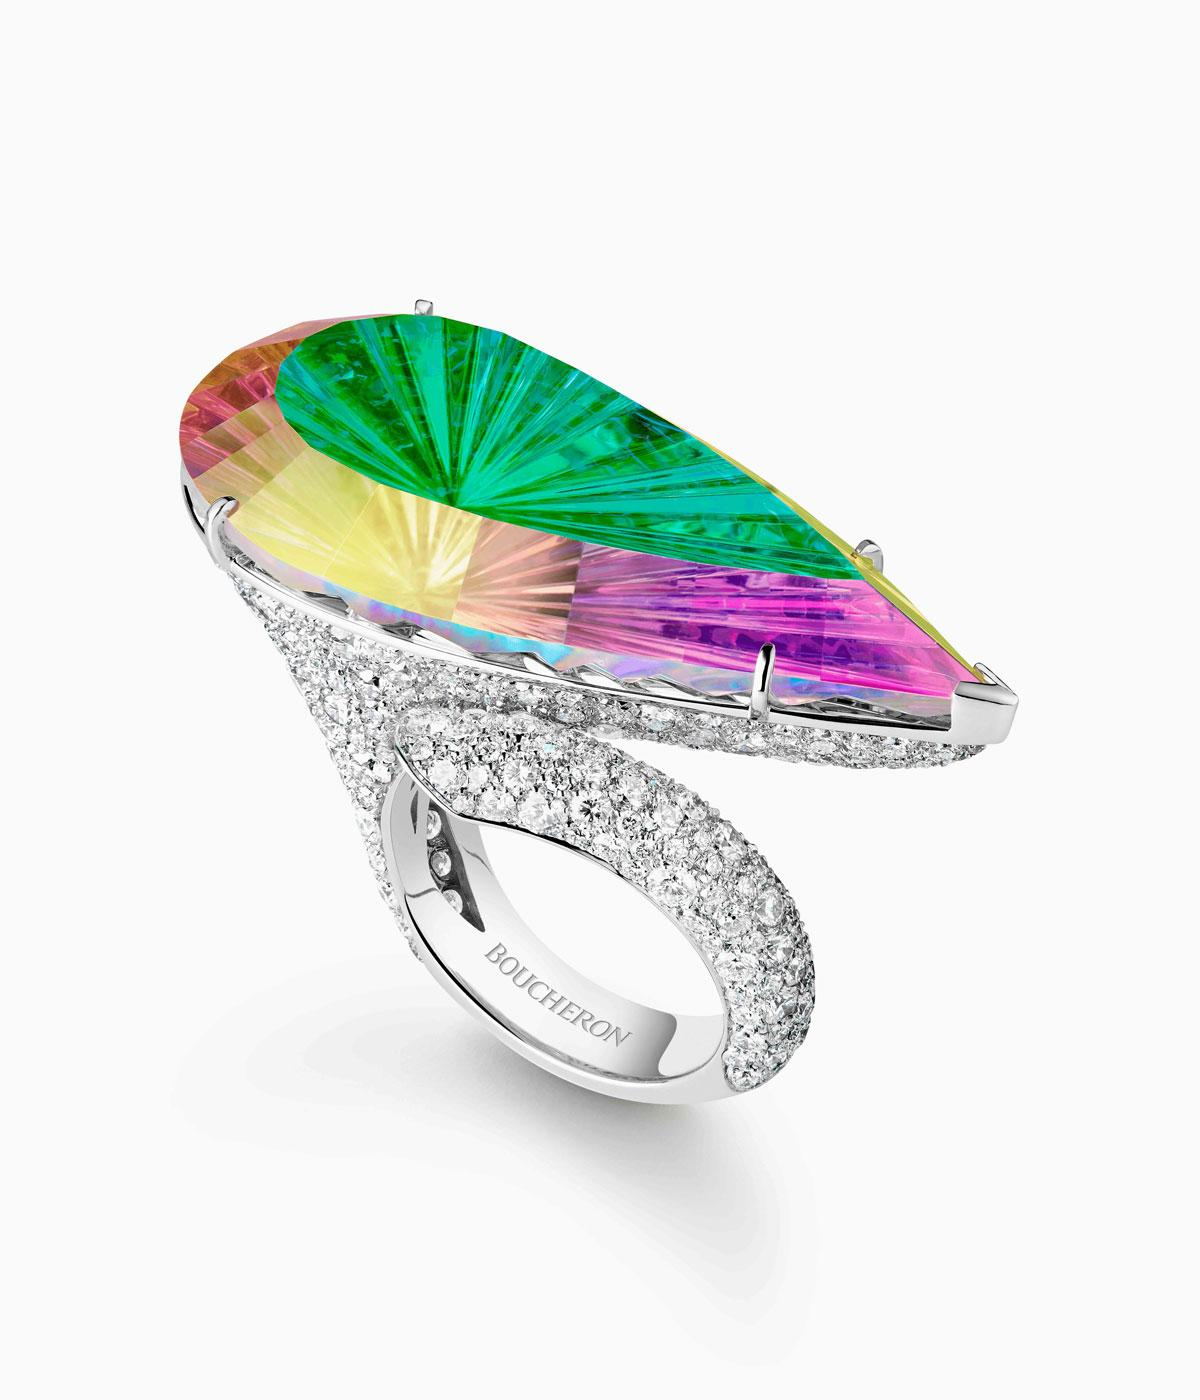 Ring in rainbow precious stones on a daimond mount